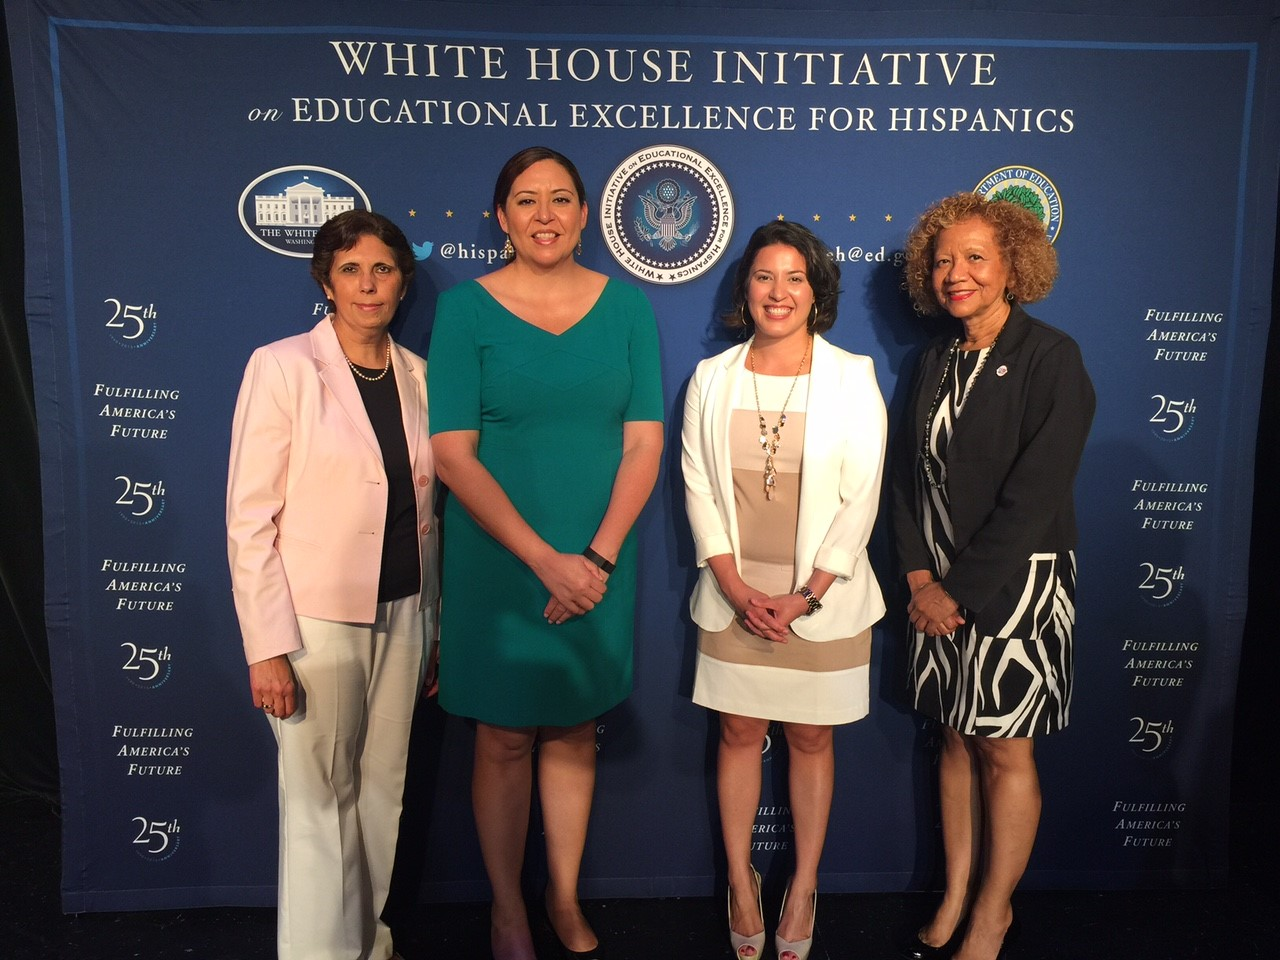 White House Initiative